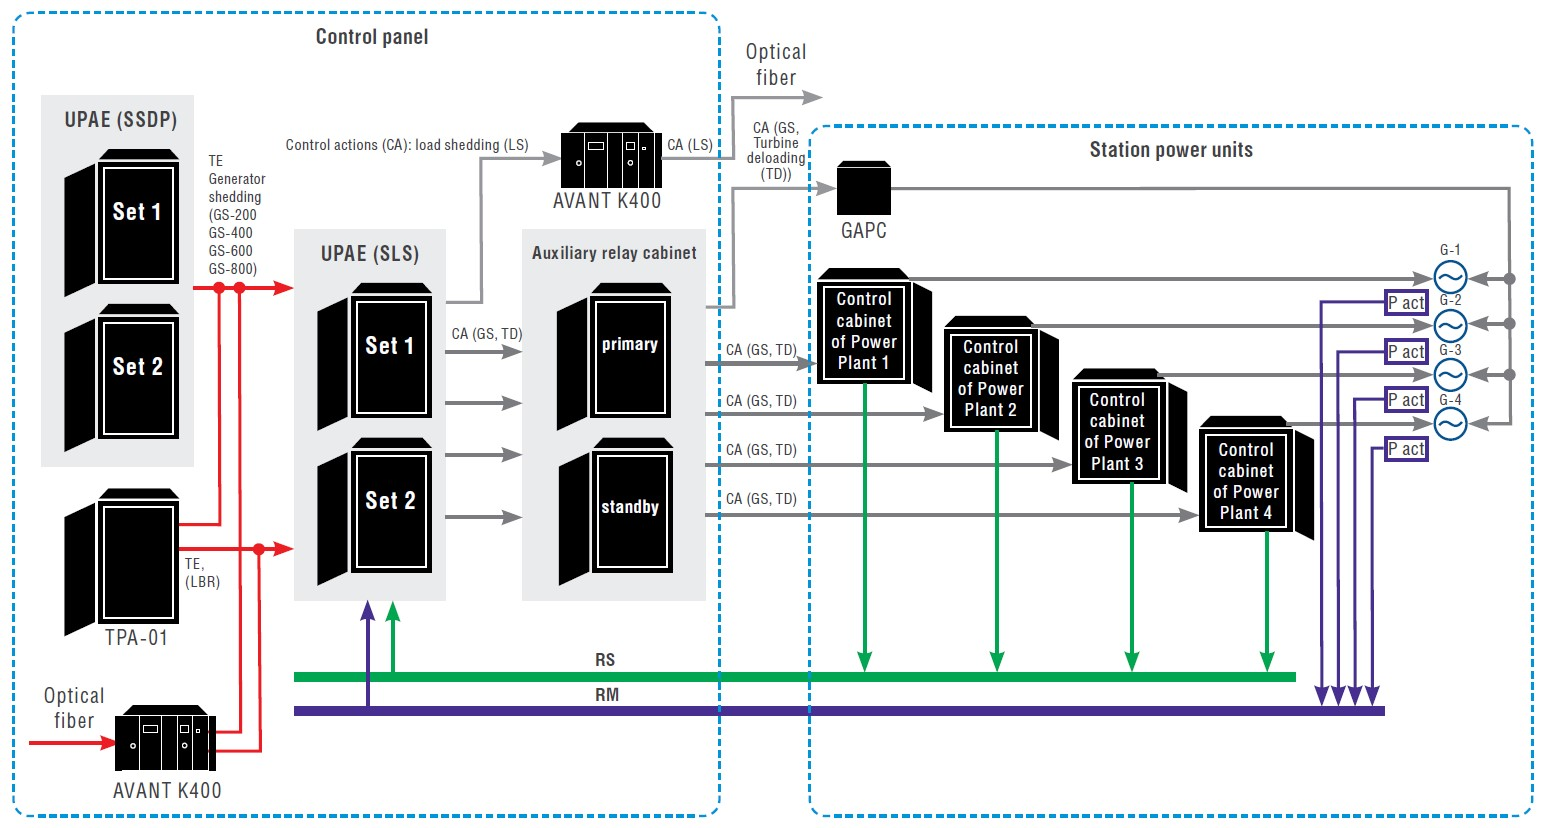 Block diagram of automatic load shedding of power plant protection scheme based on UPAE